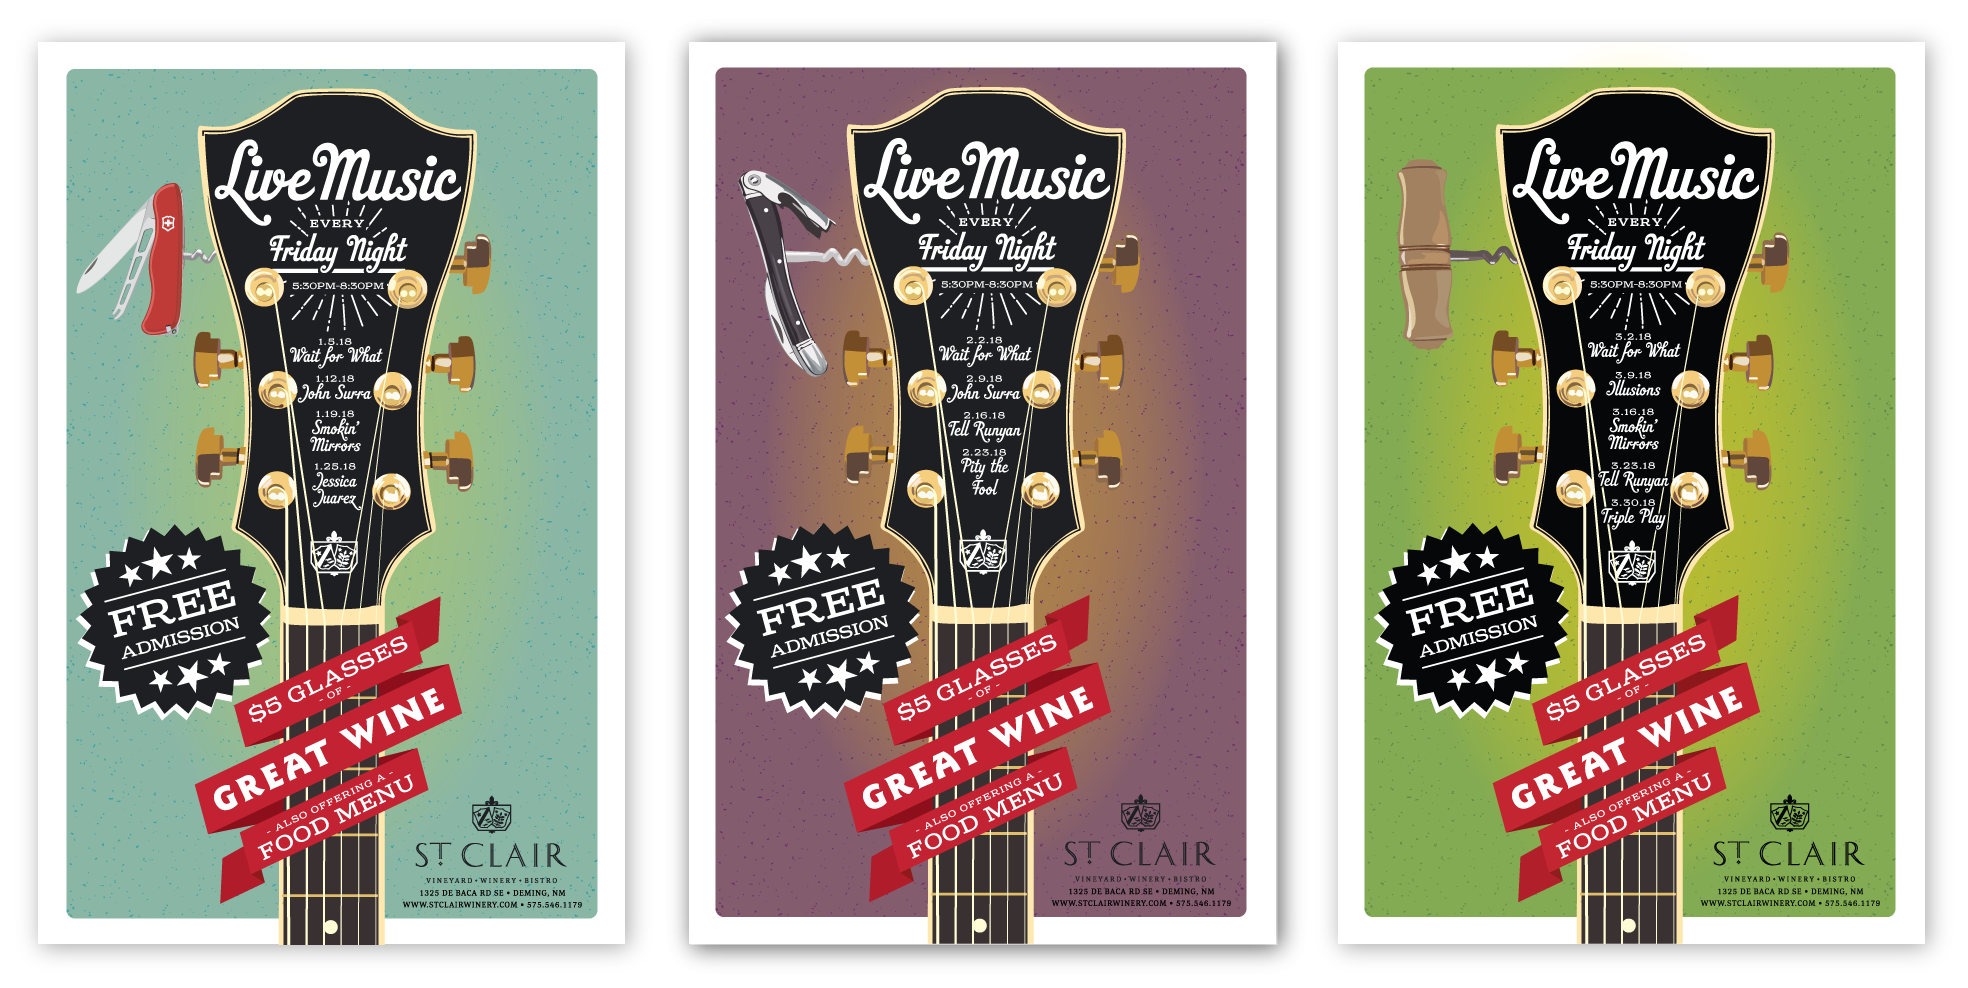 St. Clair Winery Live Music Poster Series designed by Miranda Williams